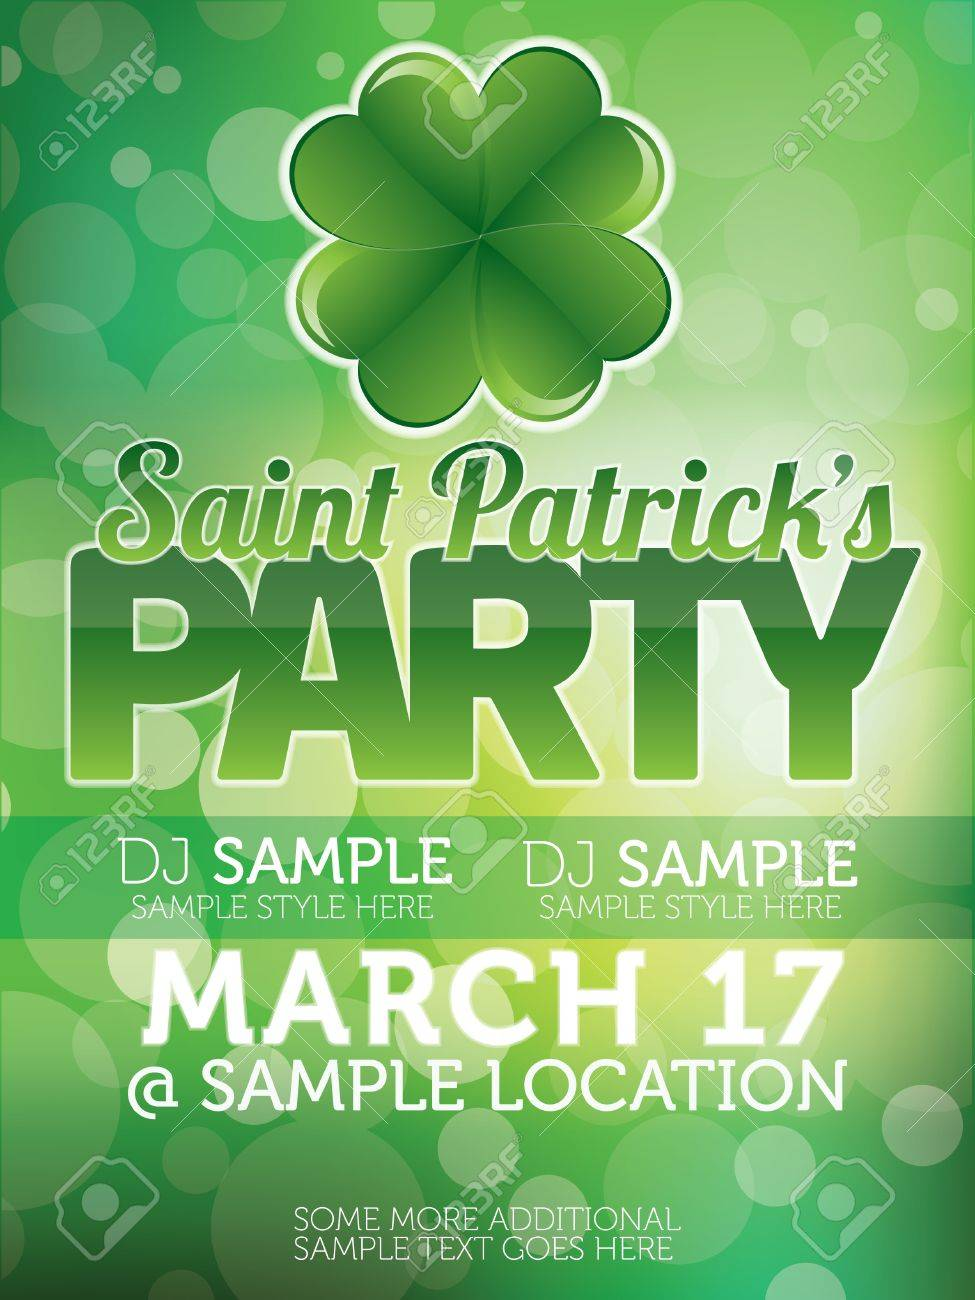 Saint Patricks Day Party Poster Stock Vector - 14576561